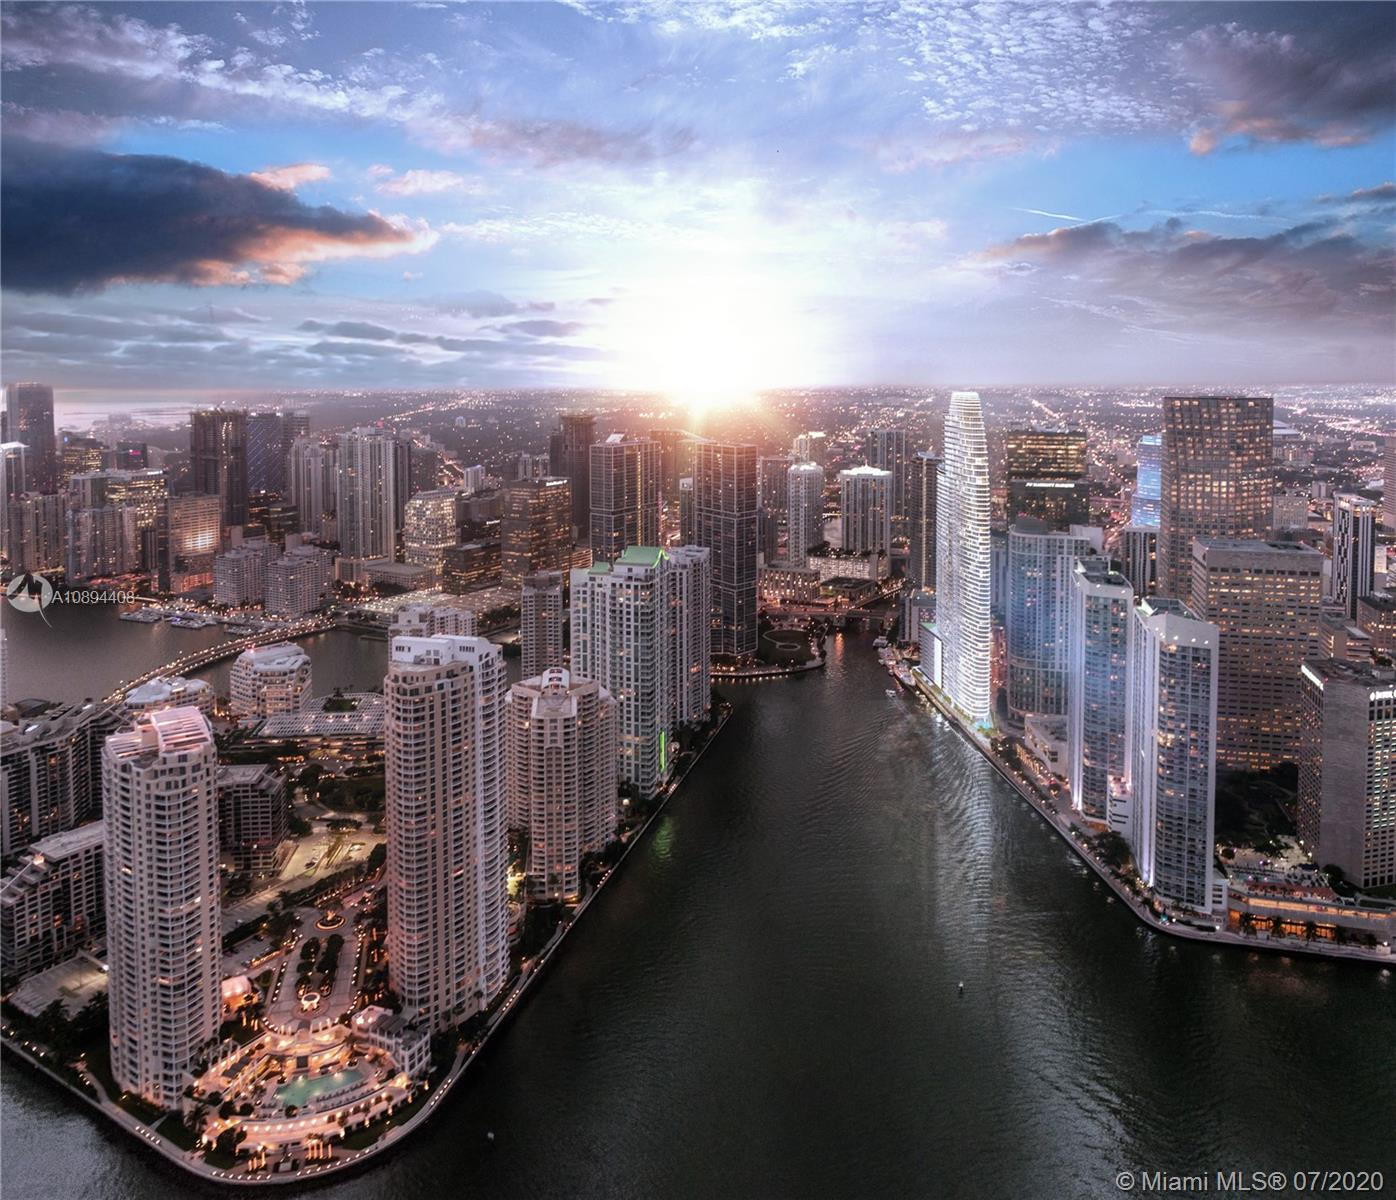 Your home in the sky. Construction is well underway. Aston Martin's first exclusively branded residential high rise with an estimated delivery in 2022. In this first exclusive development partnership with Aston Martin, the interiors are inspired by the brand's 105 year history, DNA and esthetic through subtle details and craftsmanship while taking into consideration Miami's tropical and exciting environment. The residential only tower will be over 800' as the tallest